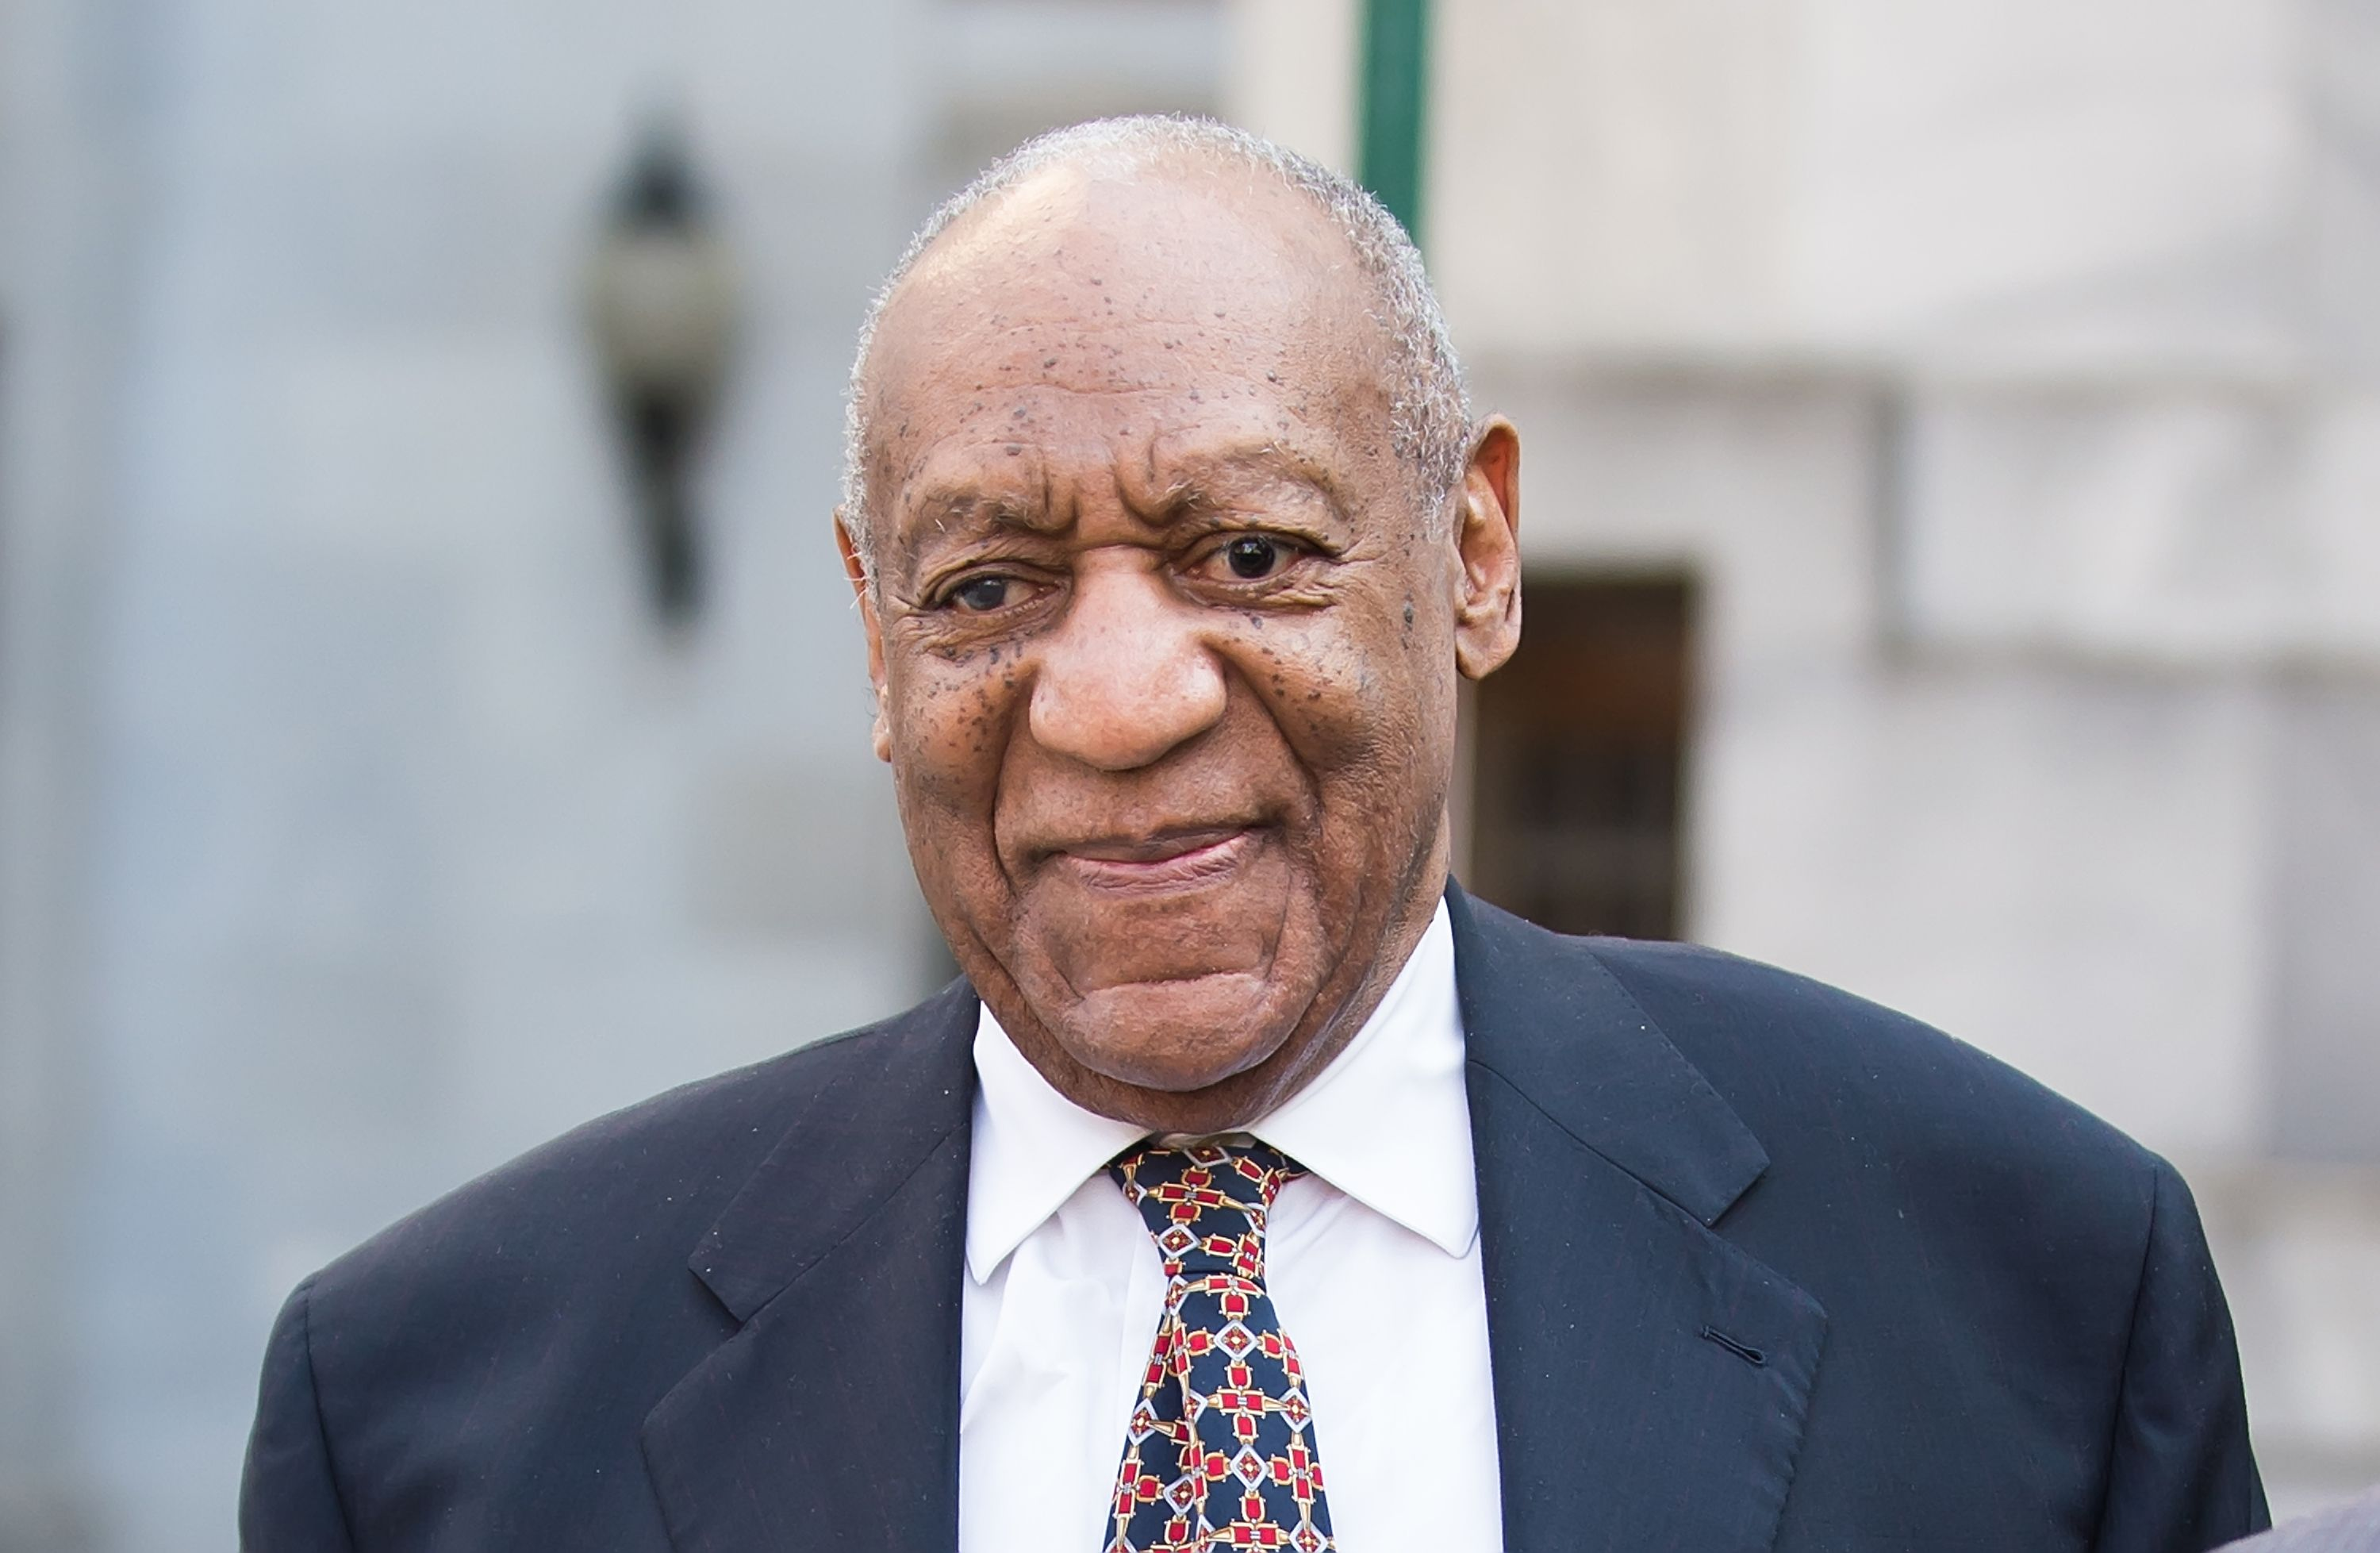 Actor/stand-up comedian Bill Cosby at the Montgomery County Courthouse for the fifth day of his retrial for sexual assault charges on April 13, 2018 | Photo: Getty Images